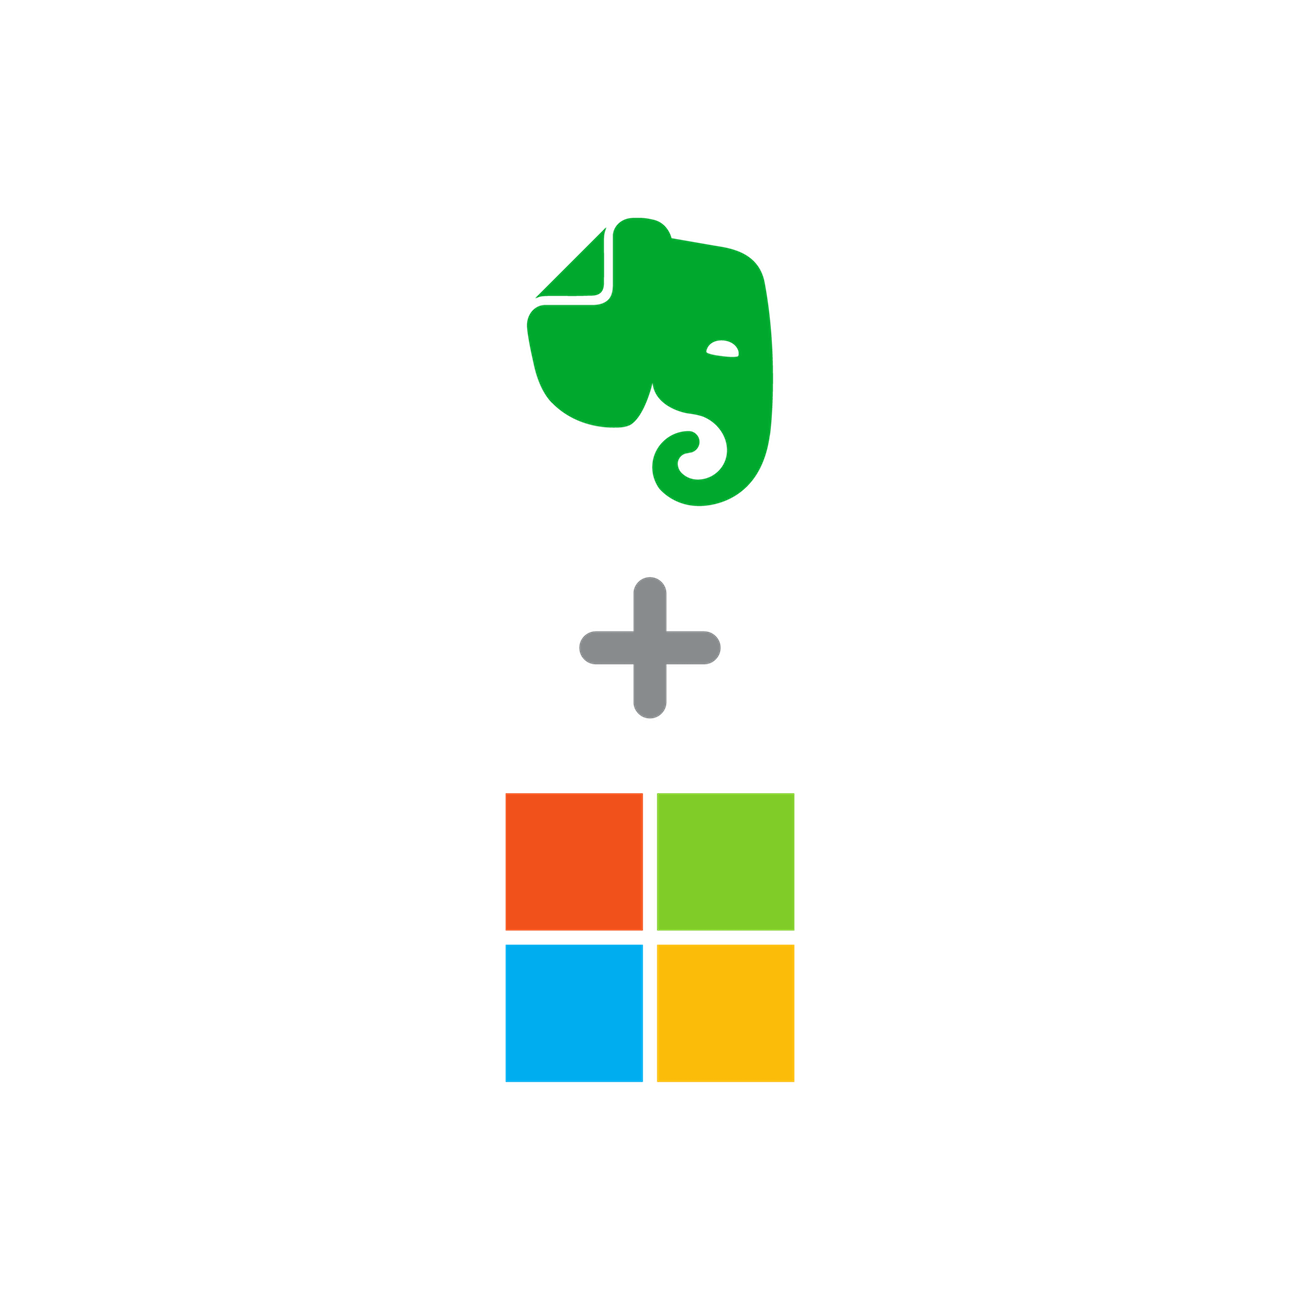 Evernote and Microsoft logos